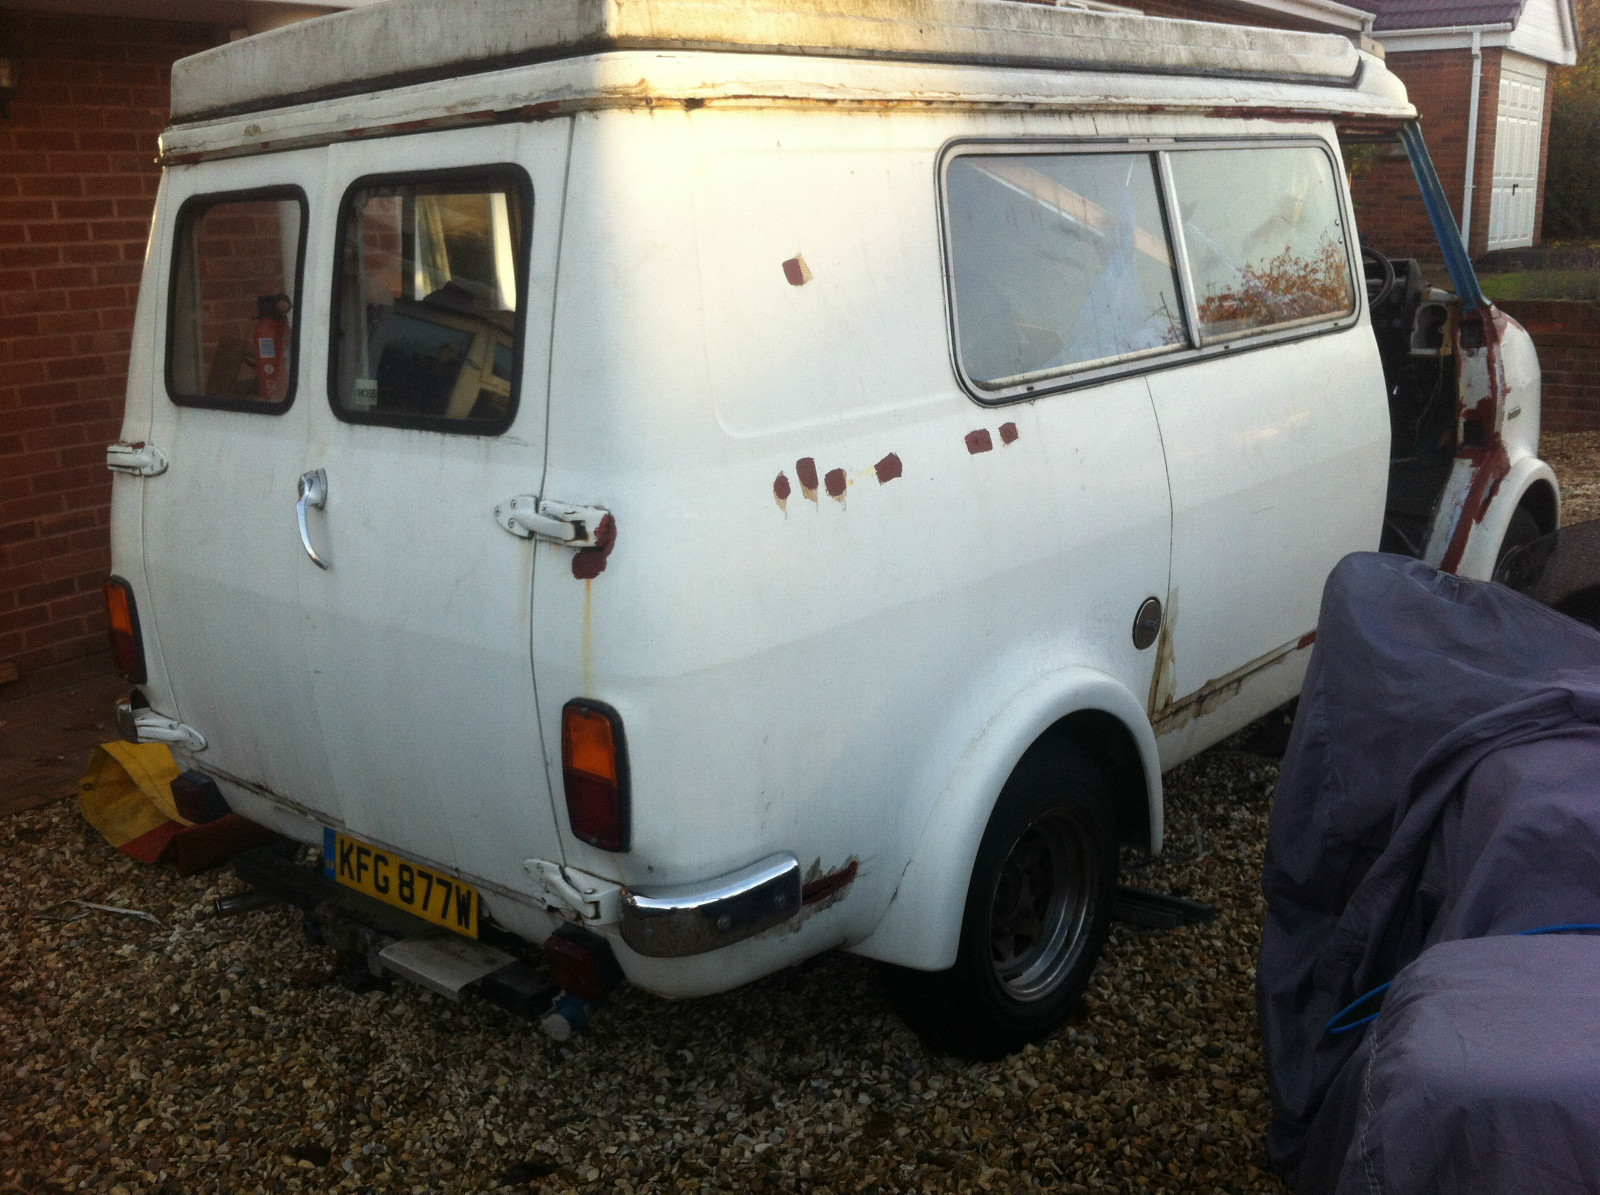 9f706dd00a This pop-top CF camper for sale on ebay. It has plenty of rust issues but  it could be a good project if you can fix it up. It s located in  Stourbridge